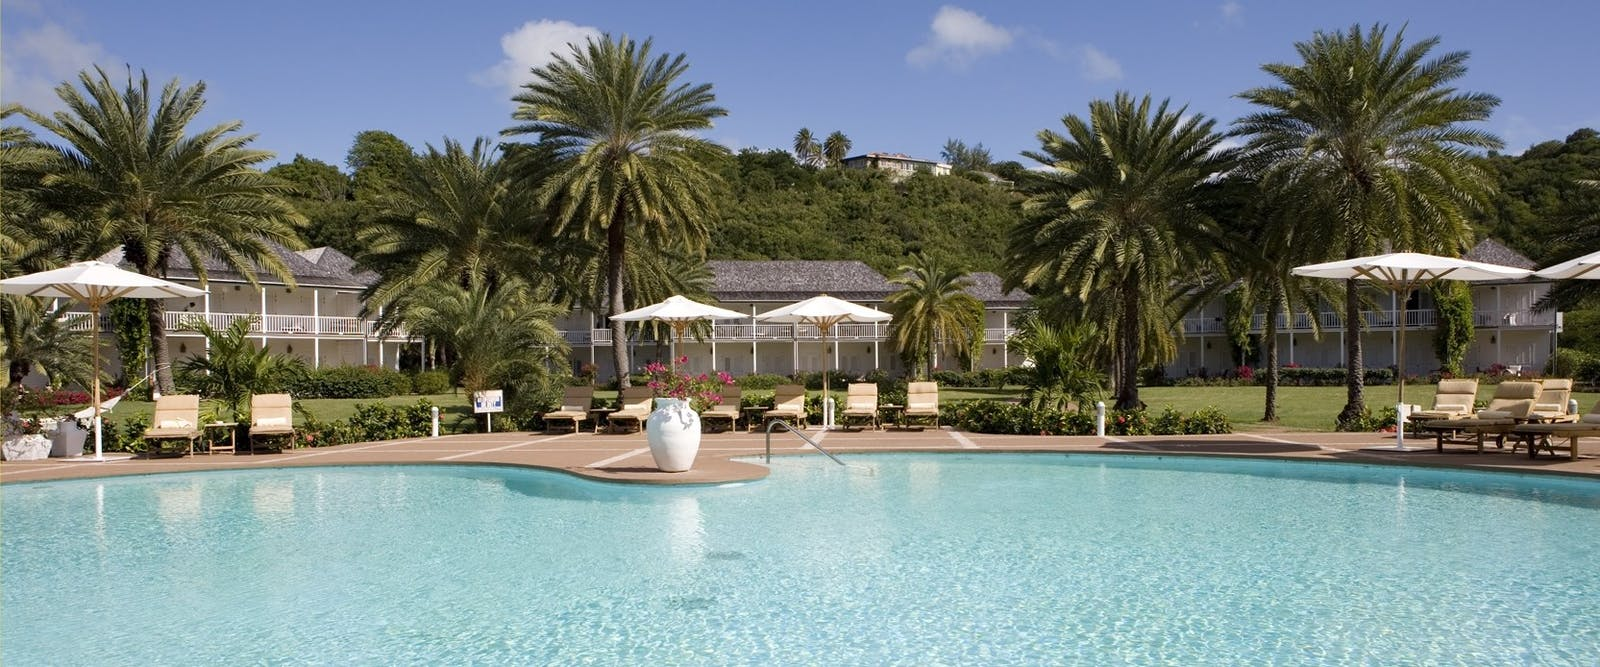 Pool Side at The Inn at English Harbour, Antigua